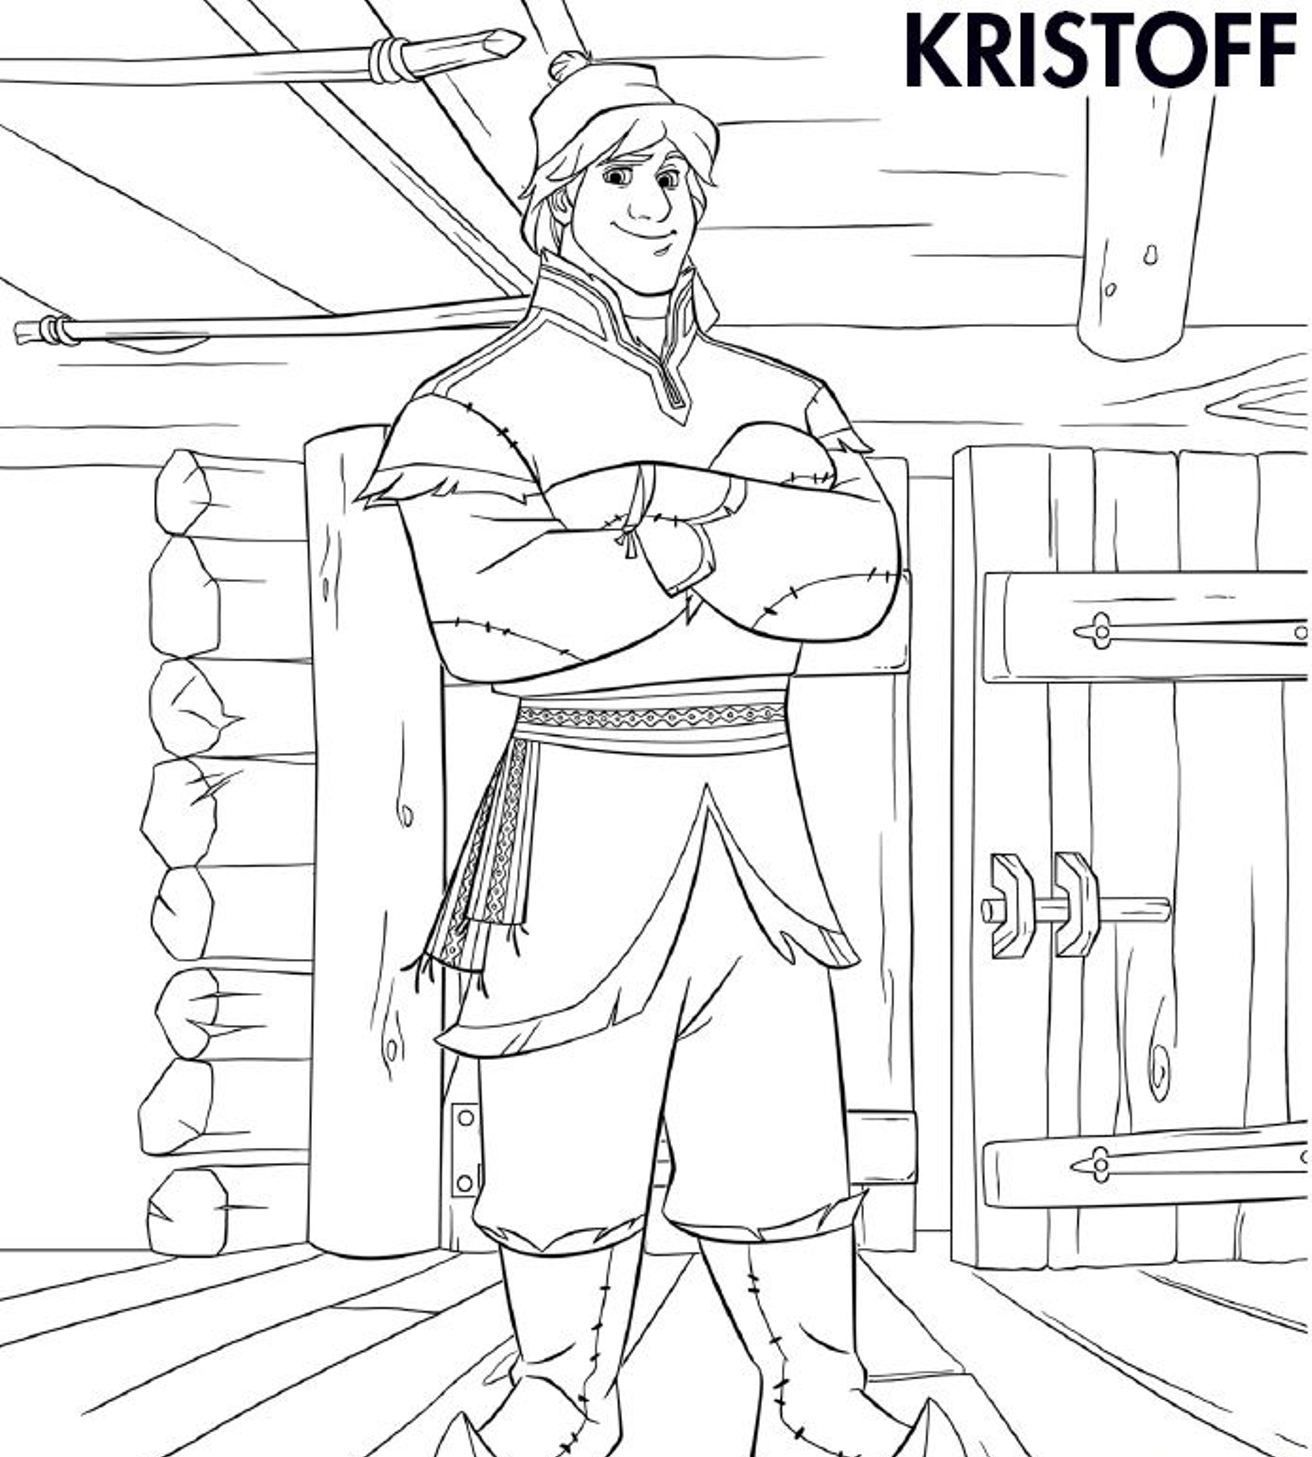 Kristoff Frozen Coloring Page | Printable - Frozen - Party for Kids ...